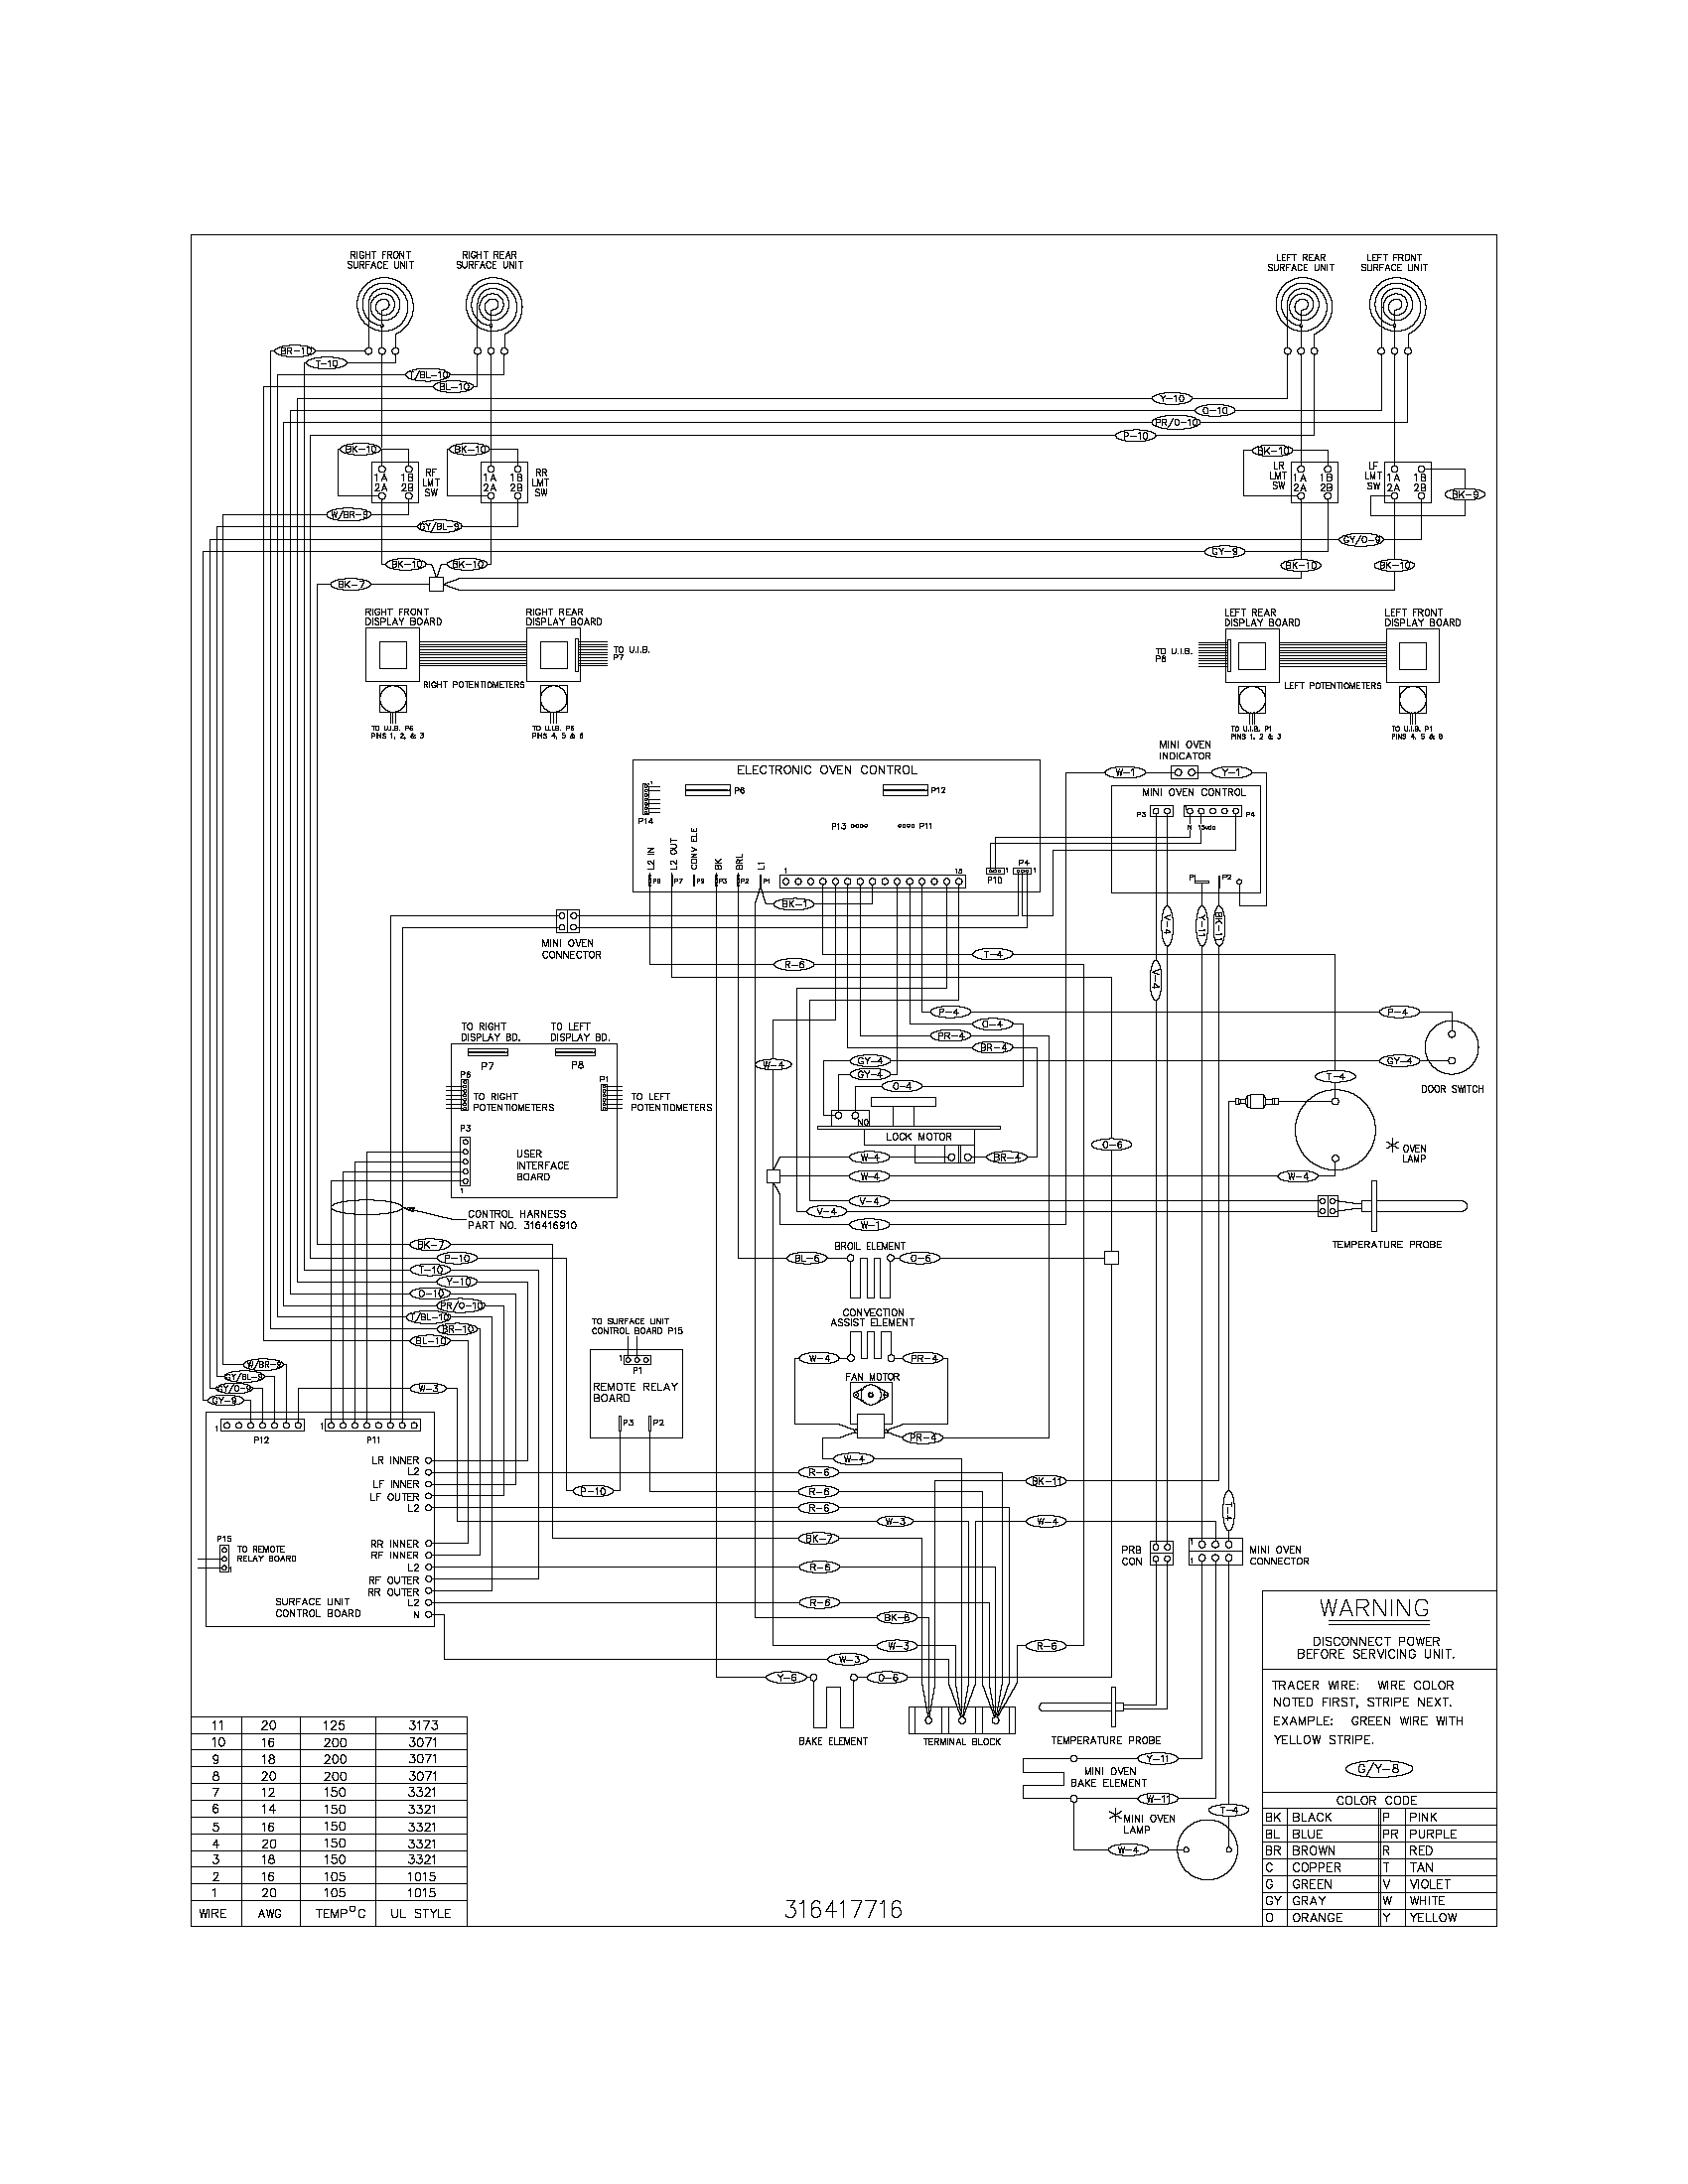 wiring diagram parts odes wiring diagram e z go wiring diagram \u2022 wiring diagrams j westinghouse oven element wiring diagram at gsmx.co